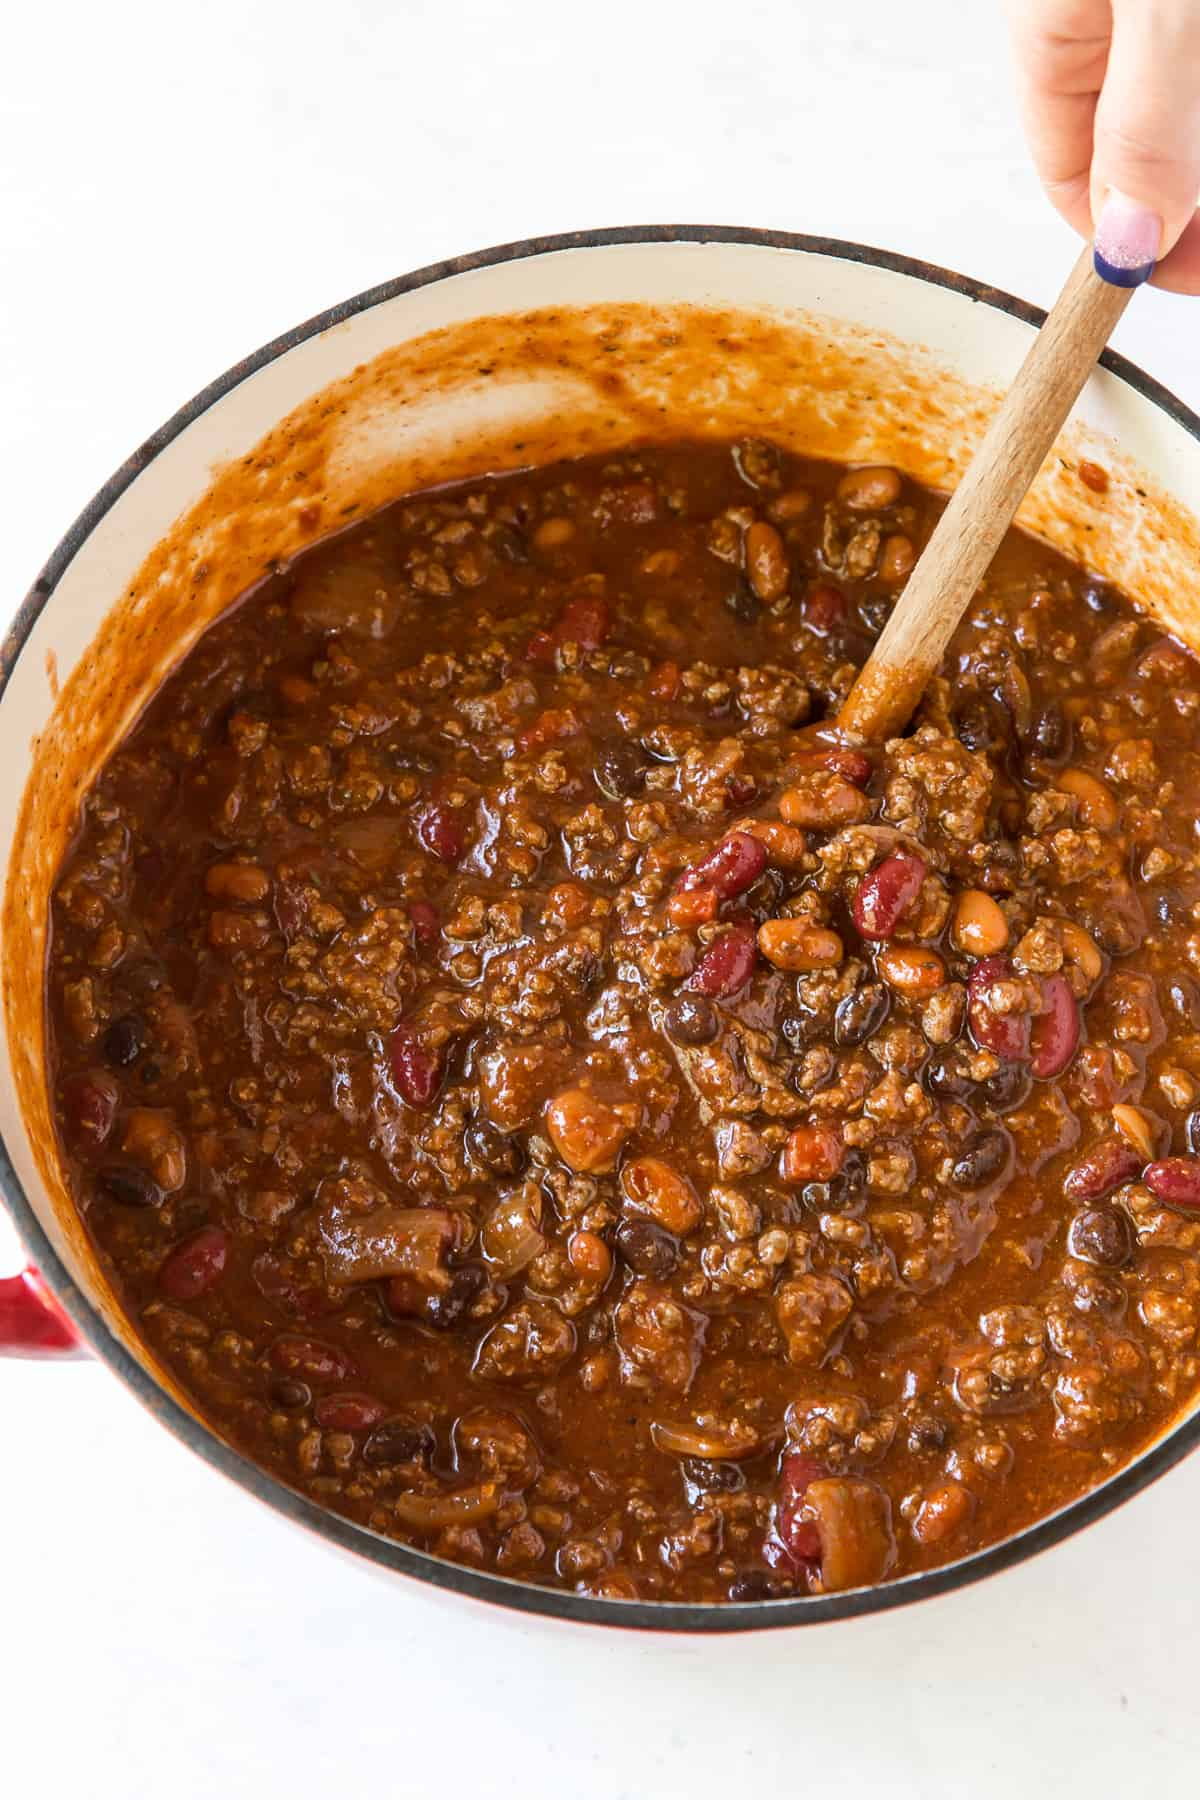 A wooden spoon stirs a pot of Halftime Chili.